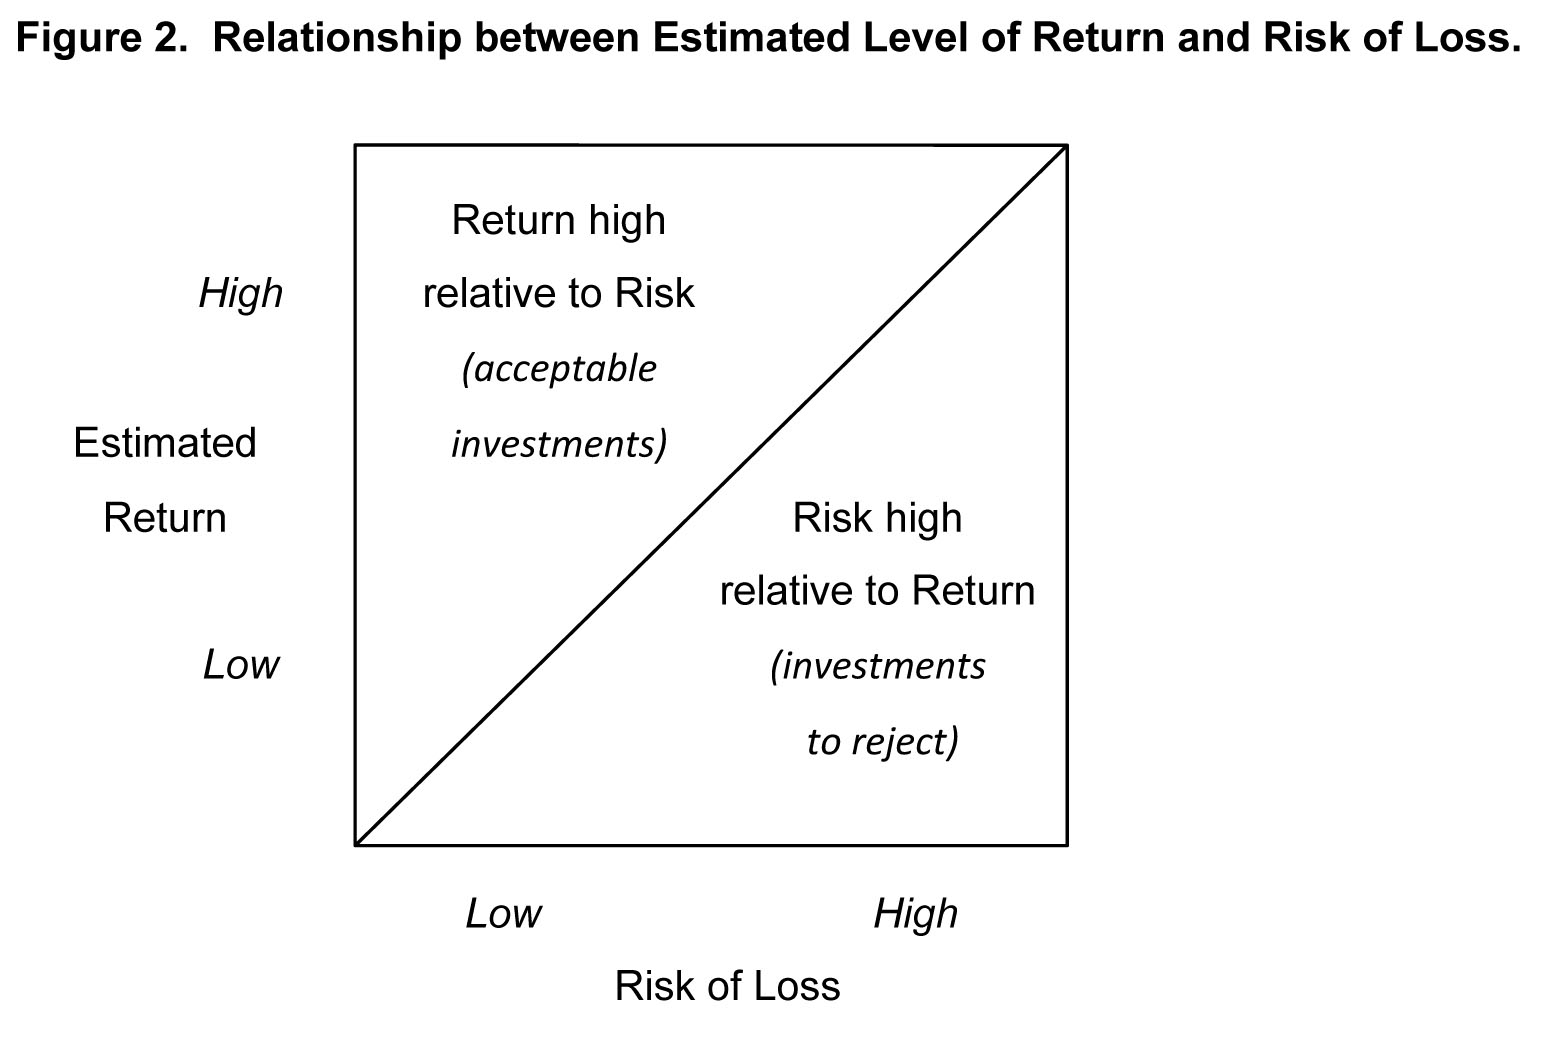 relationship between estimated level of return and risk of loss